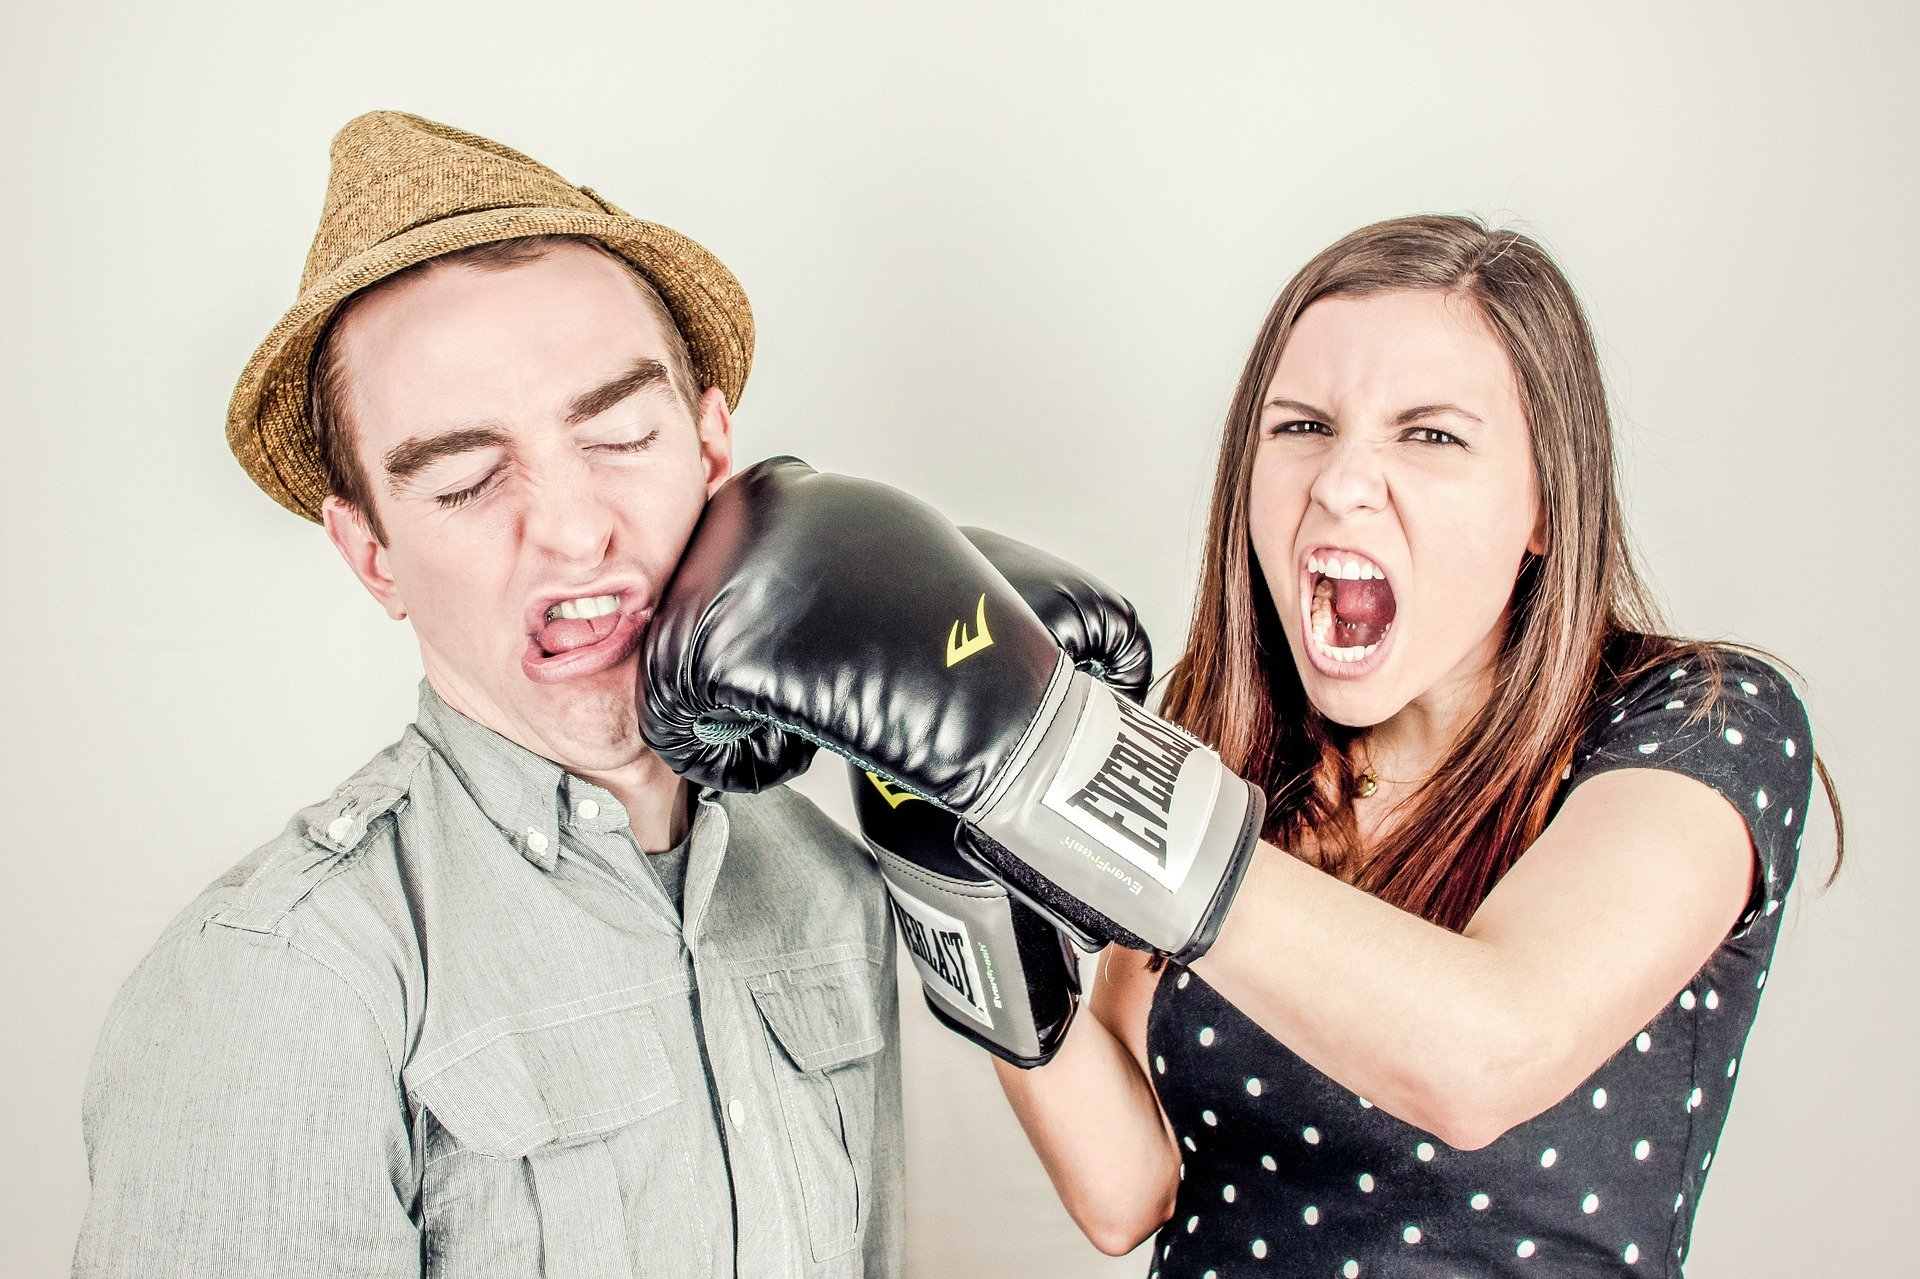 Team collaboration - Picture of woman boxing with man